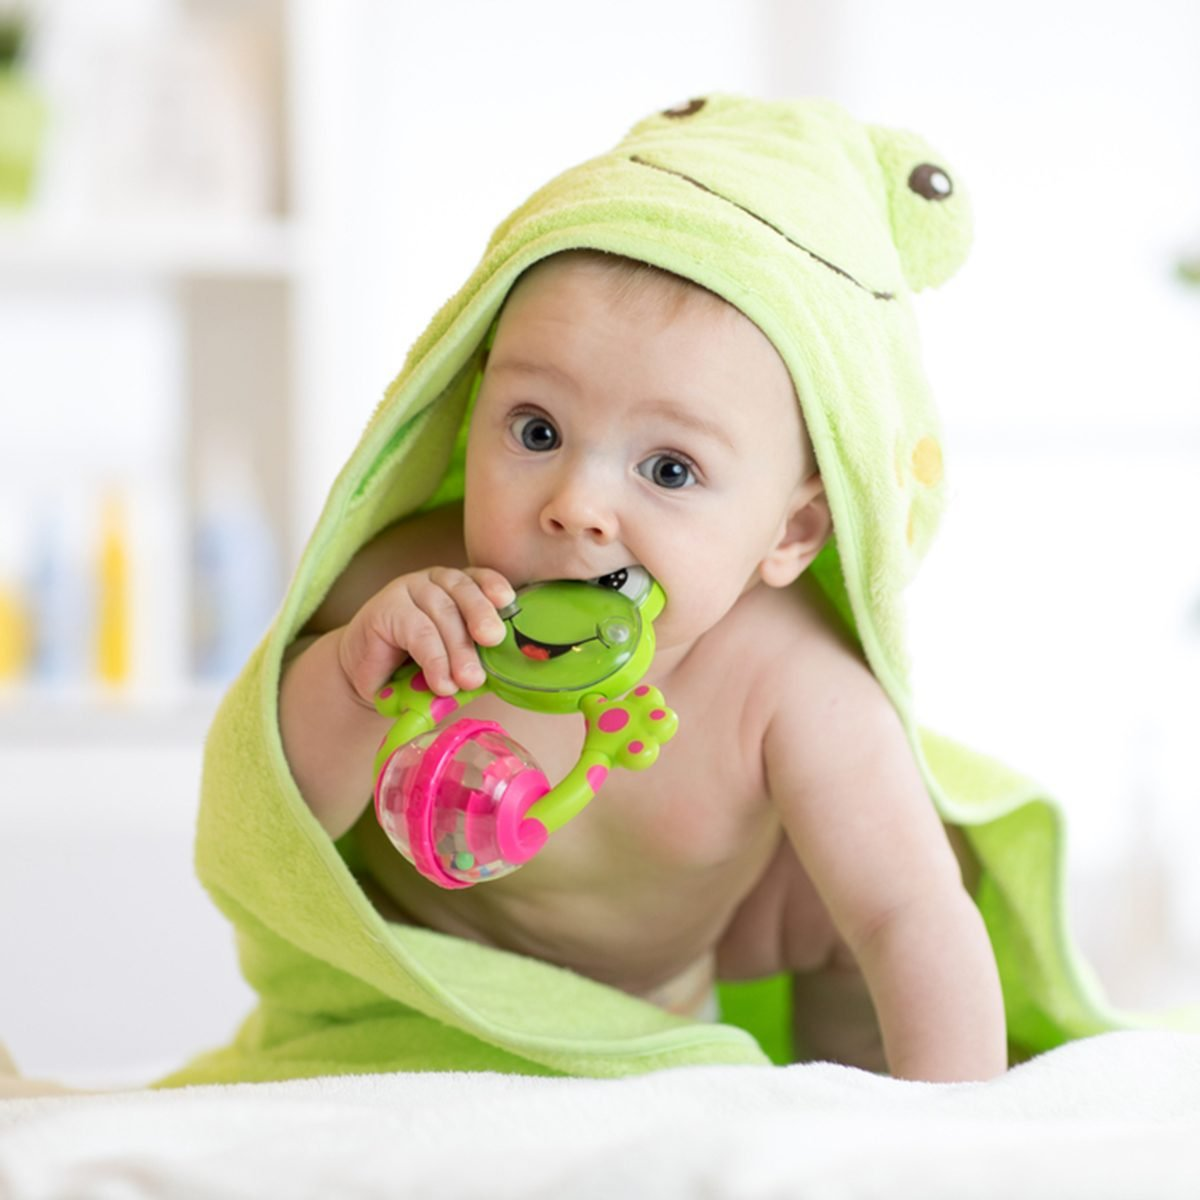 Baby boy with green towel after the bath biting toy.